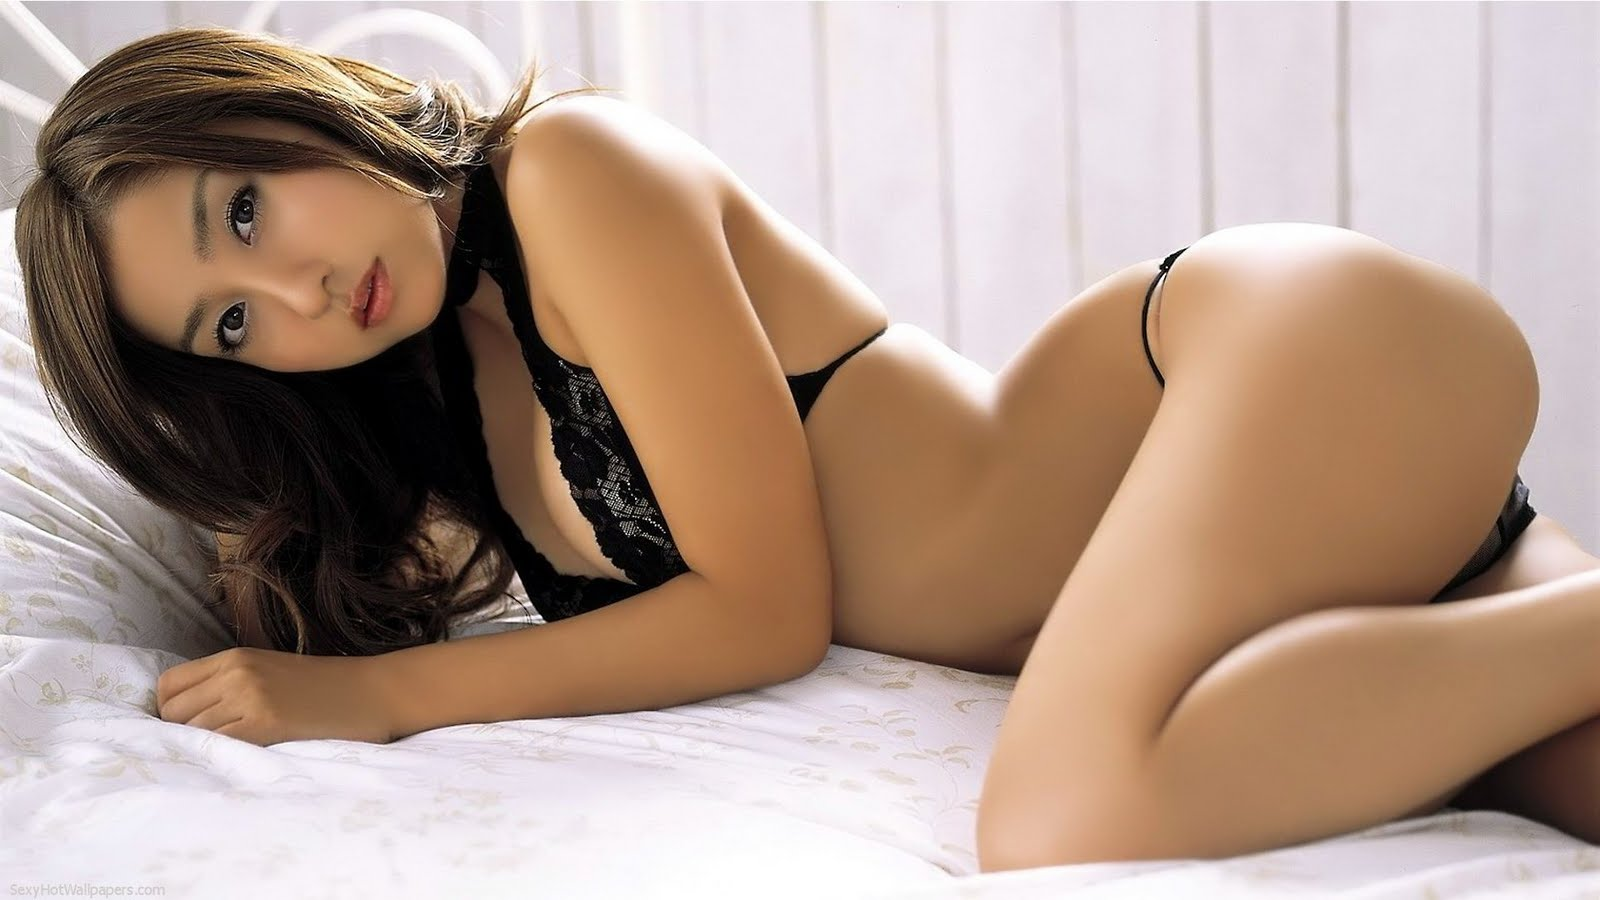 Asian Women In Lingerie 67